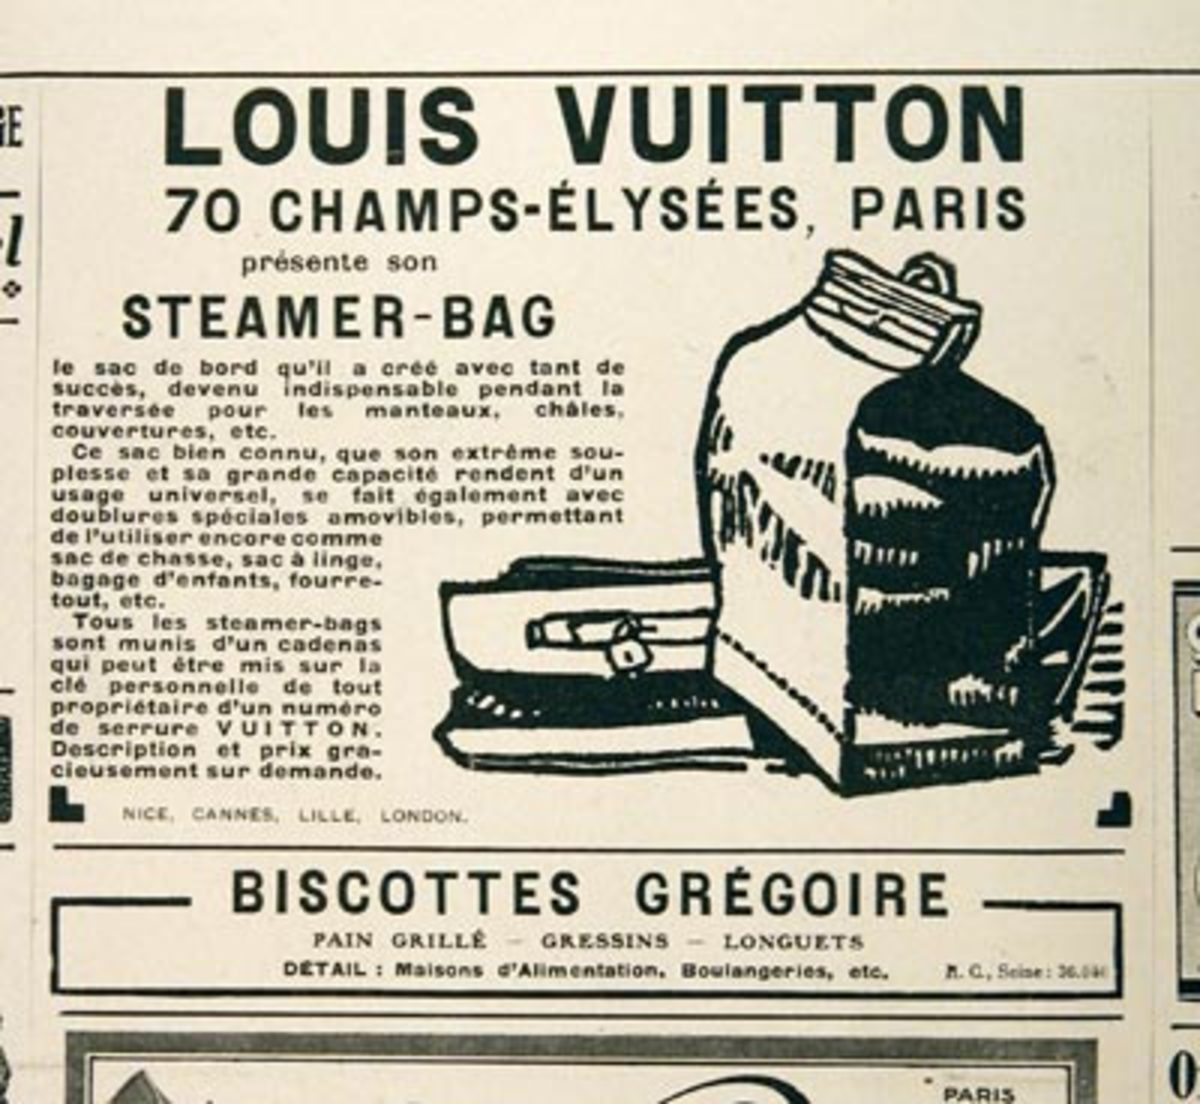 1925 French LV Ad for the original Steamer Bag!